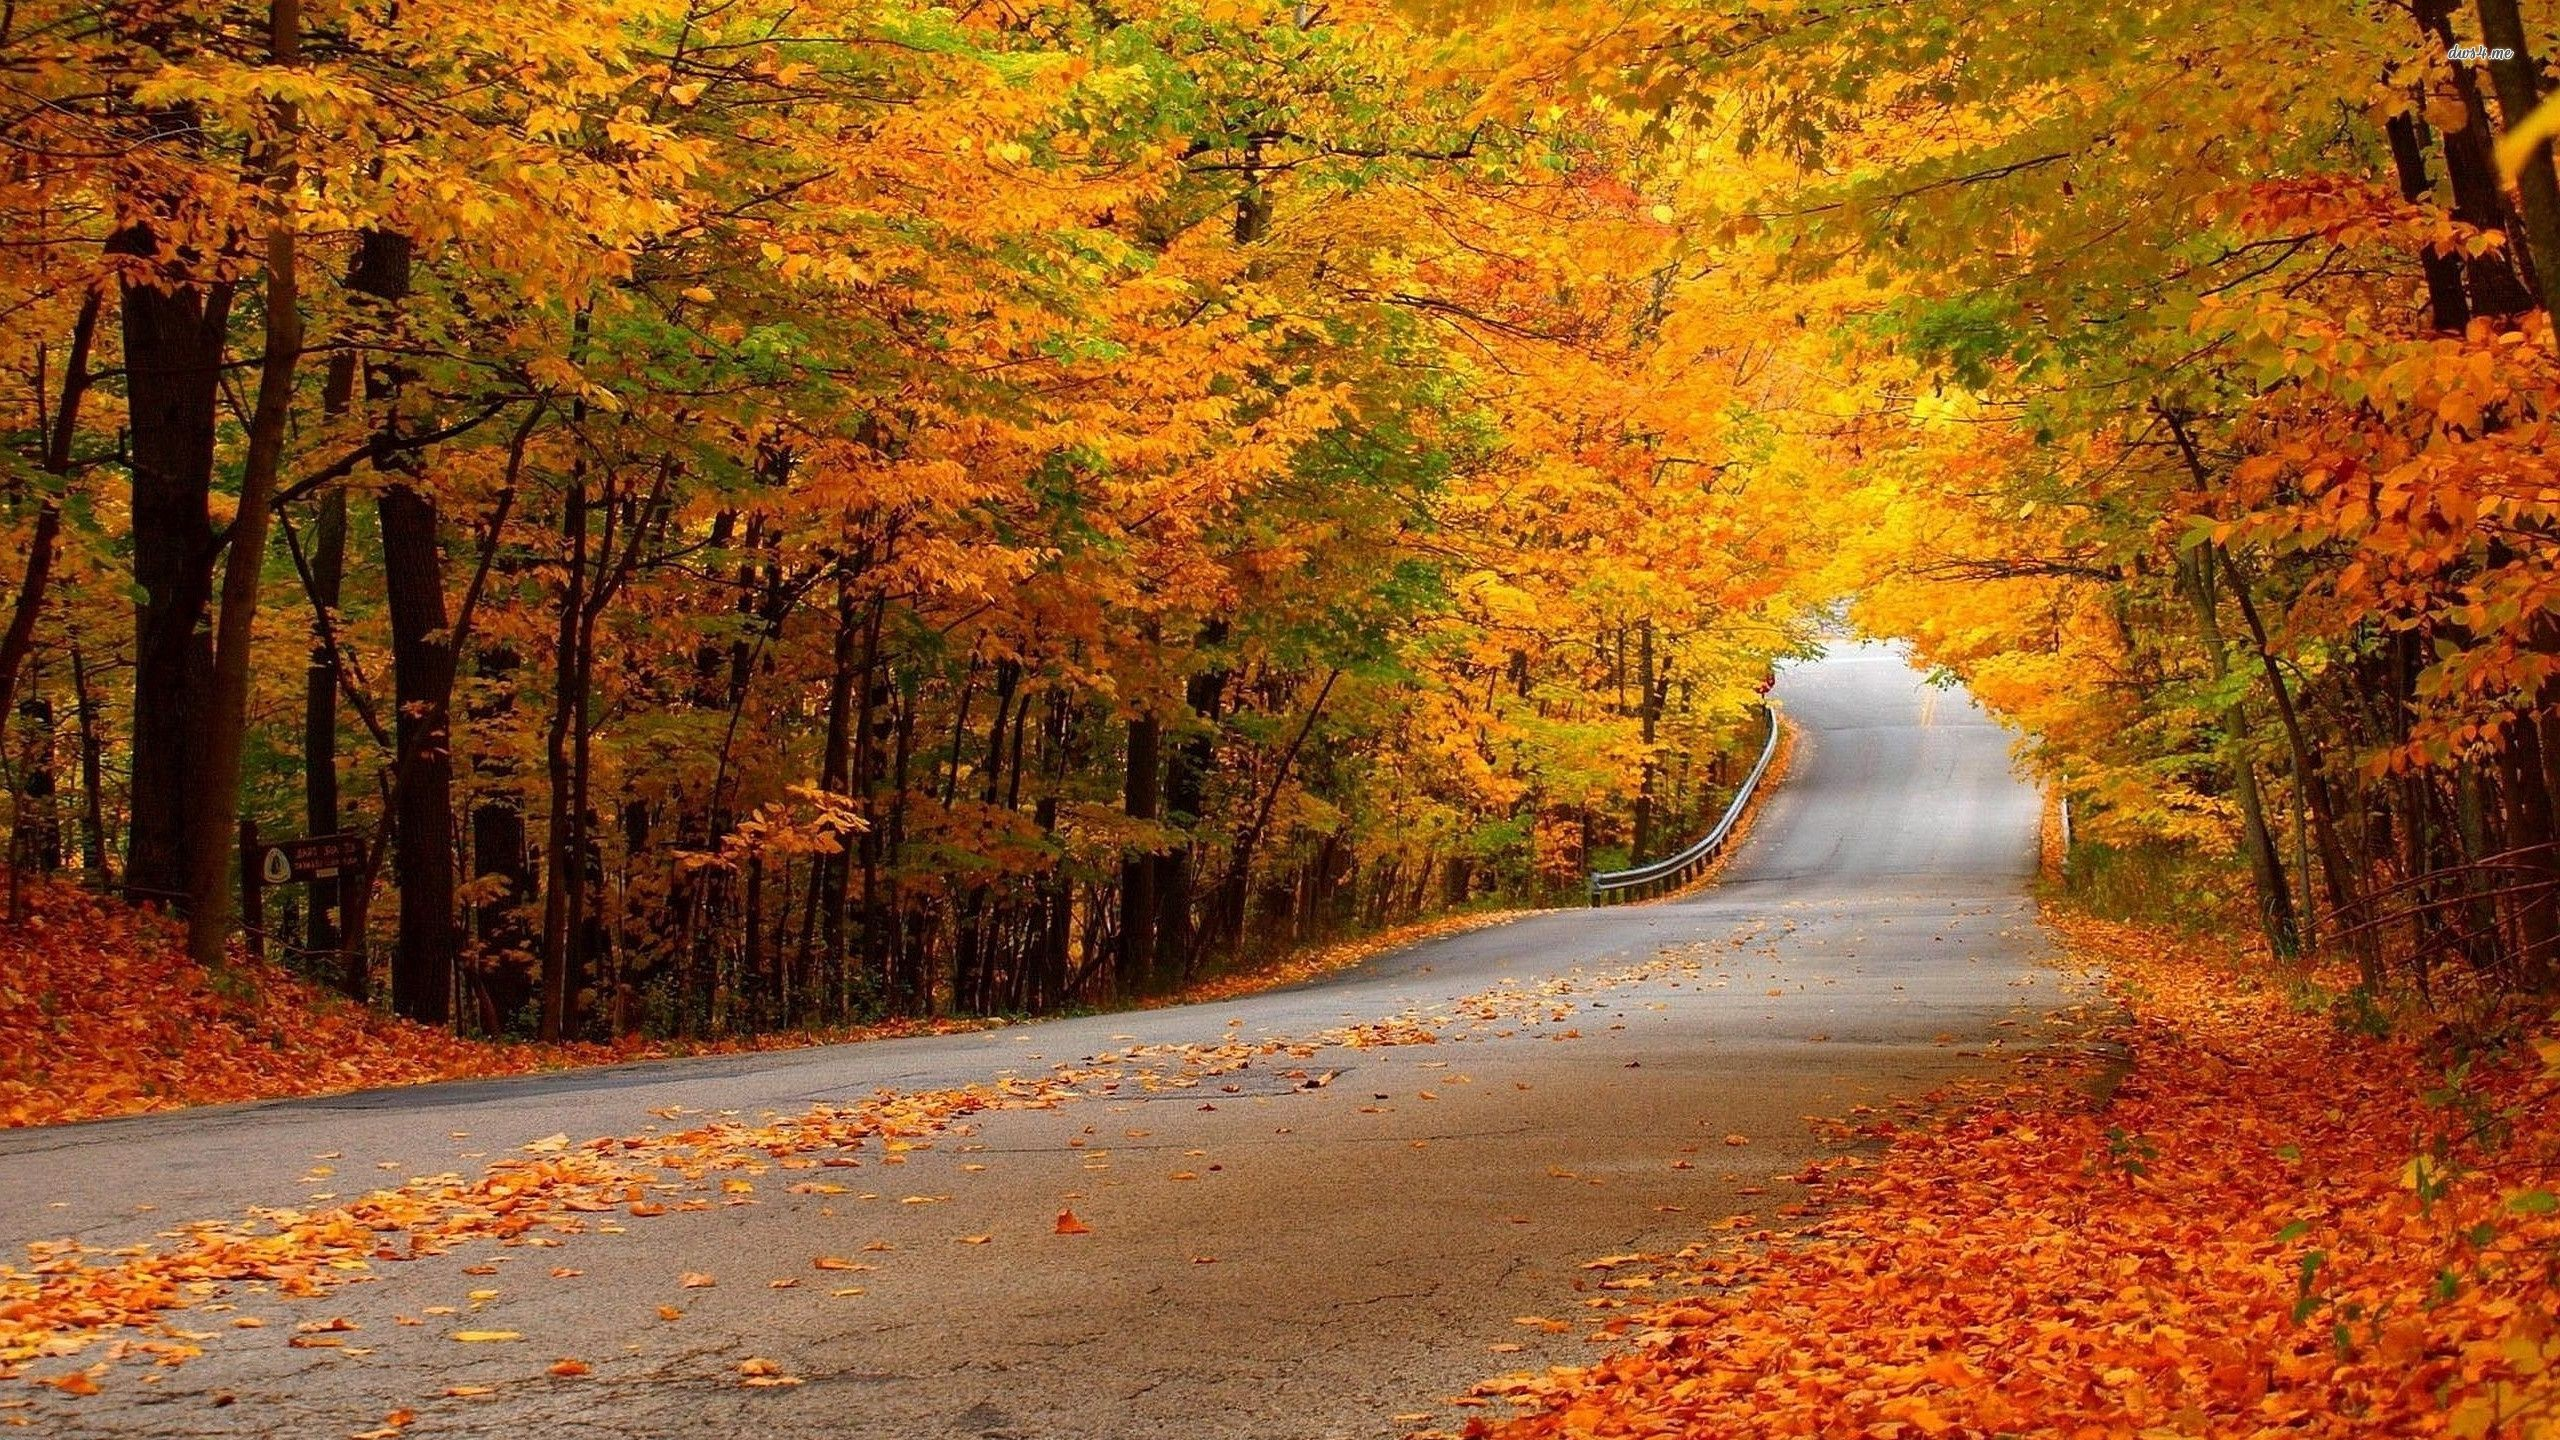 2560x1440 Fall Fairy Garden backgrounds | Road through the autumn woods wallpaper